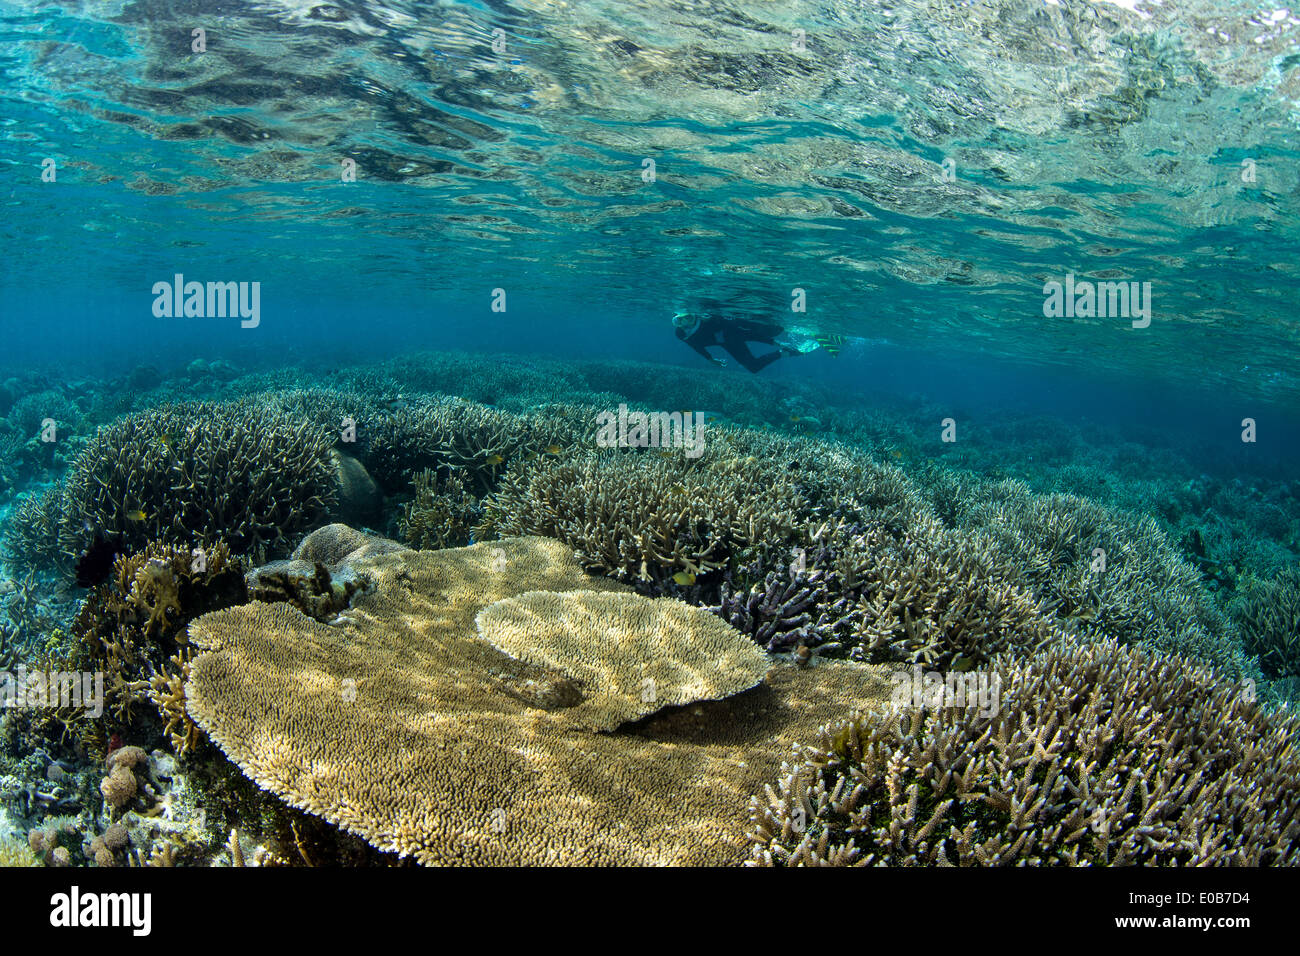 Snorkeler on coral reef. - Stock Image